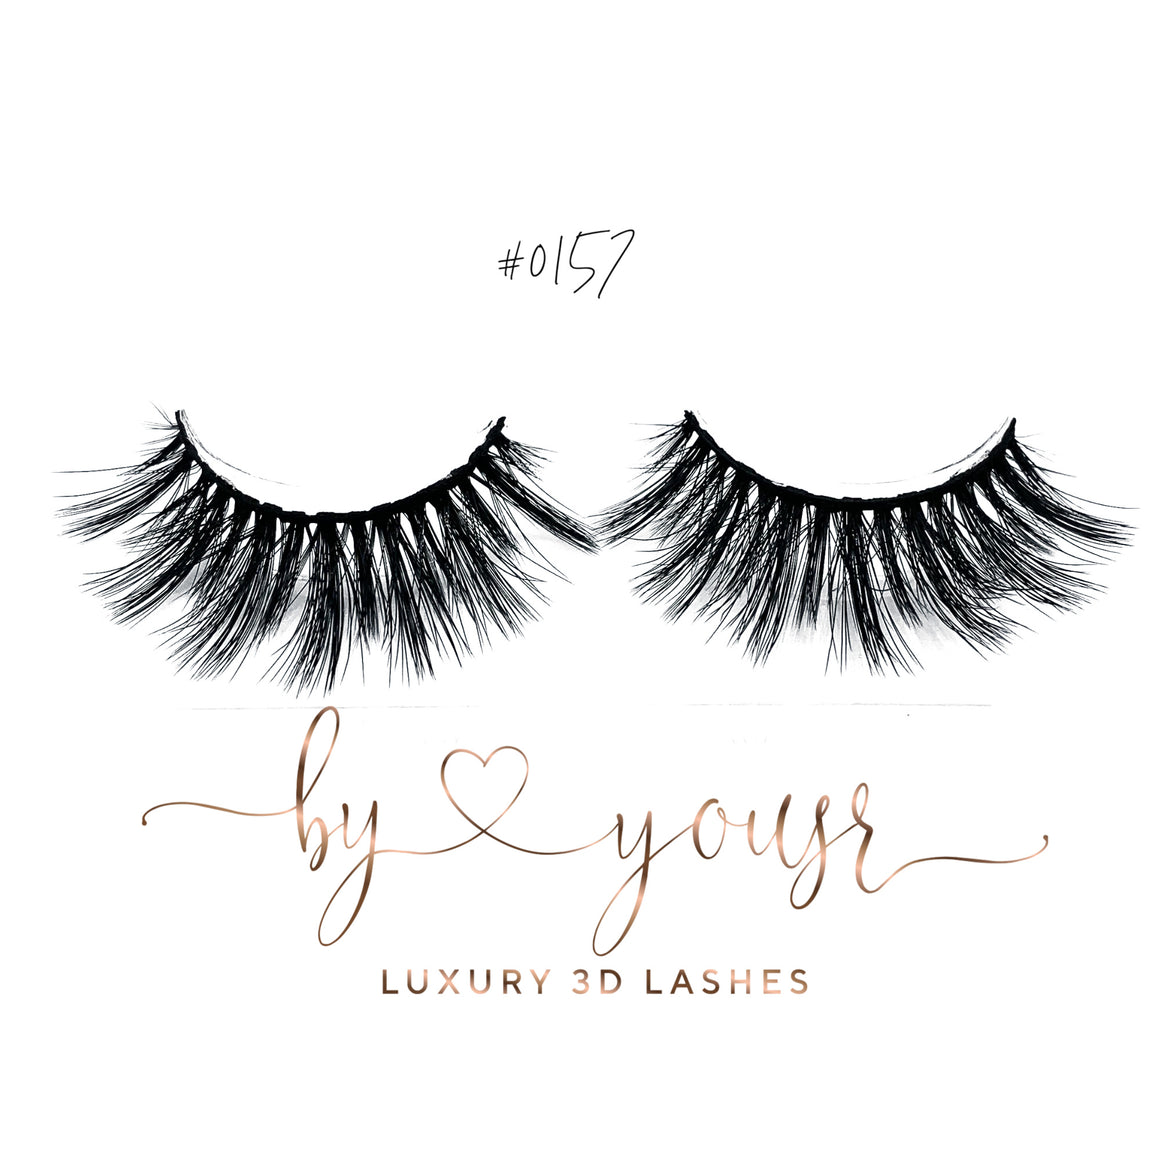 LUXURY 3D Lashes By Yousr #0157